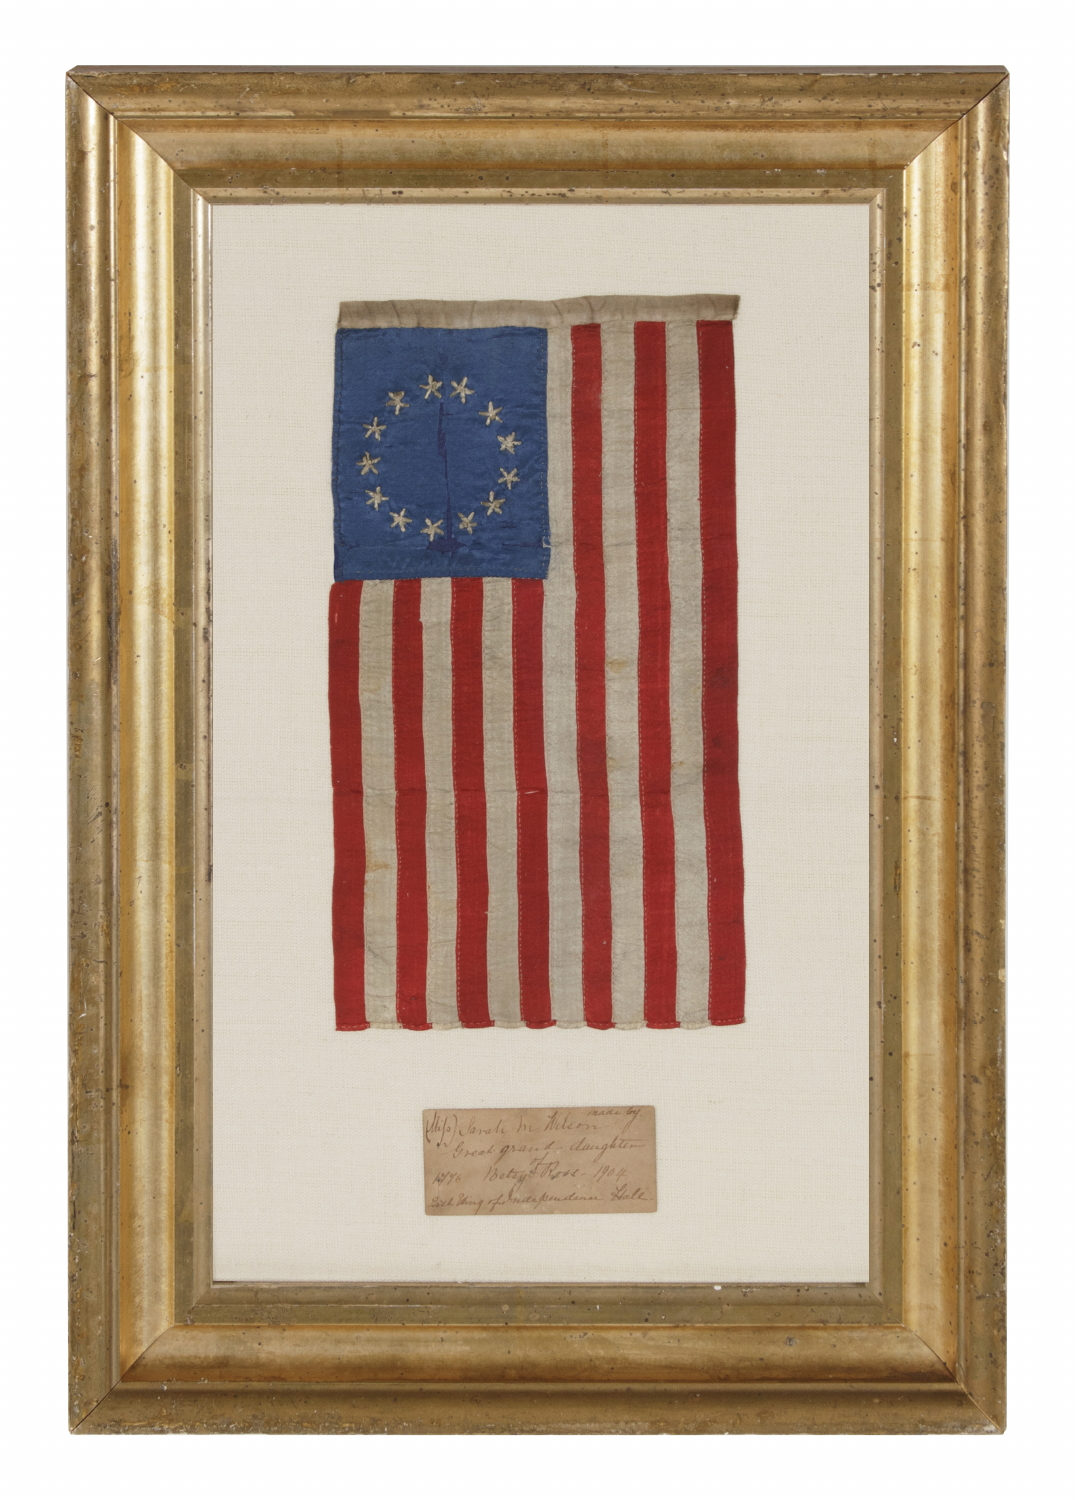 f5ec7f80a2d Jeff Bridgman Antique Flags And Painted Furniture 13 Hand. Rare flags  antique american historic large framed 38 star flag hand sewn stars sku  11336 sold ...